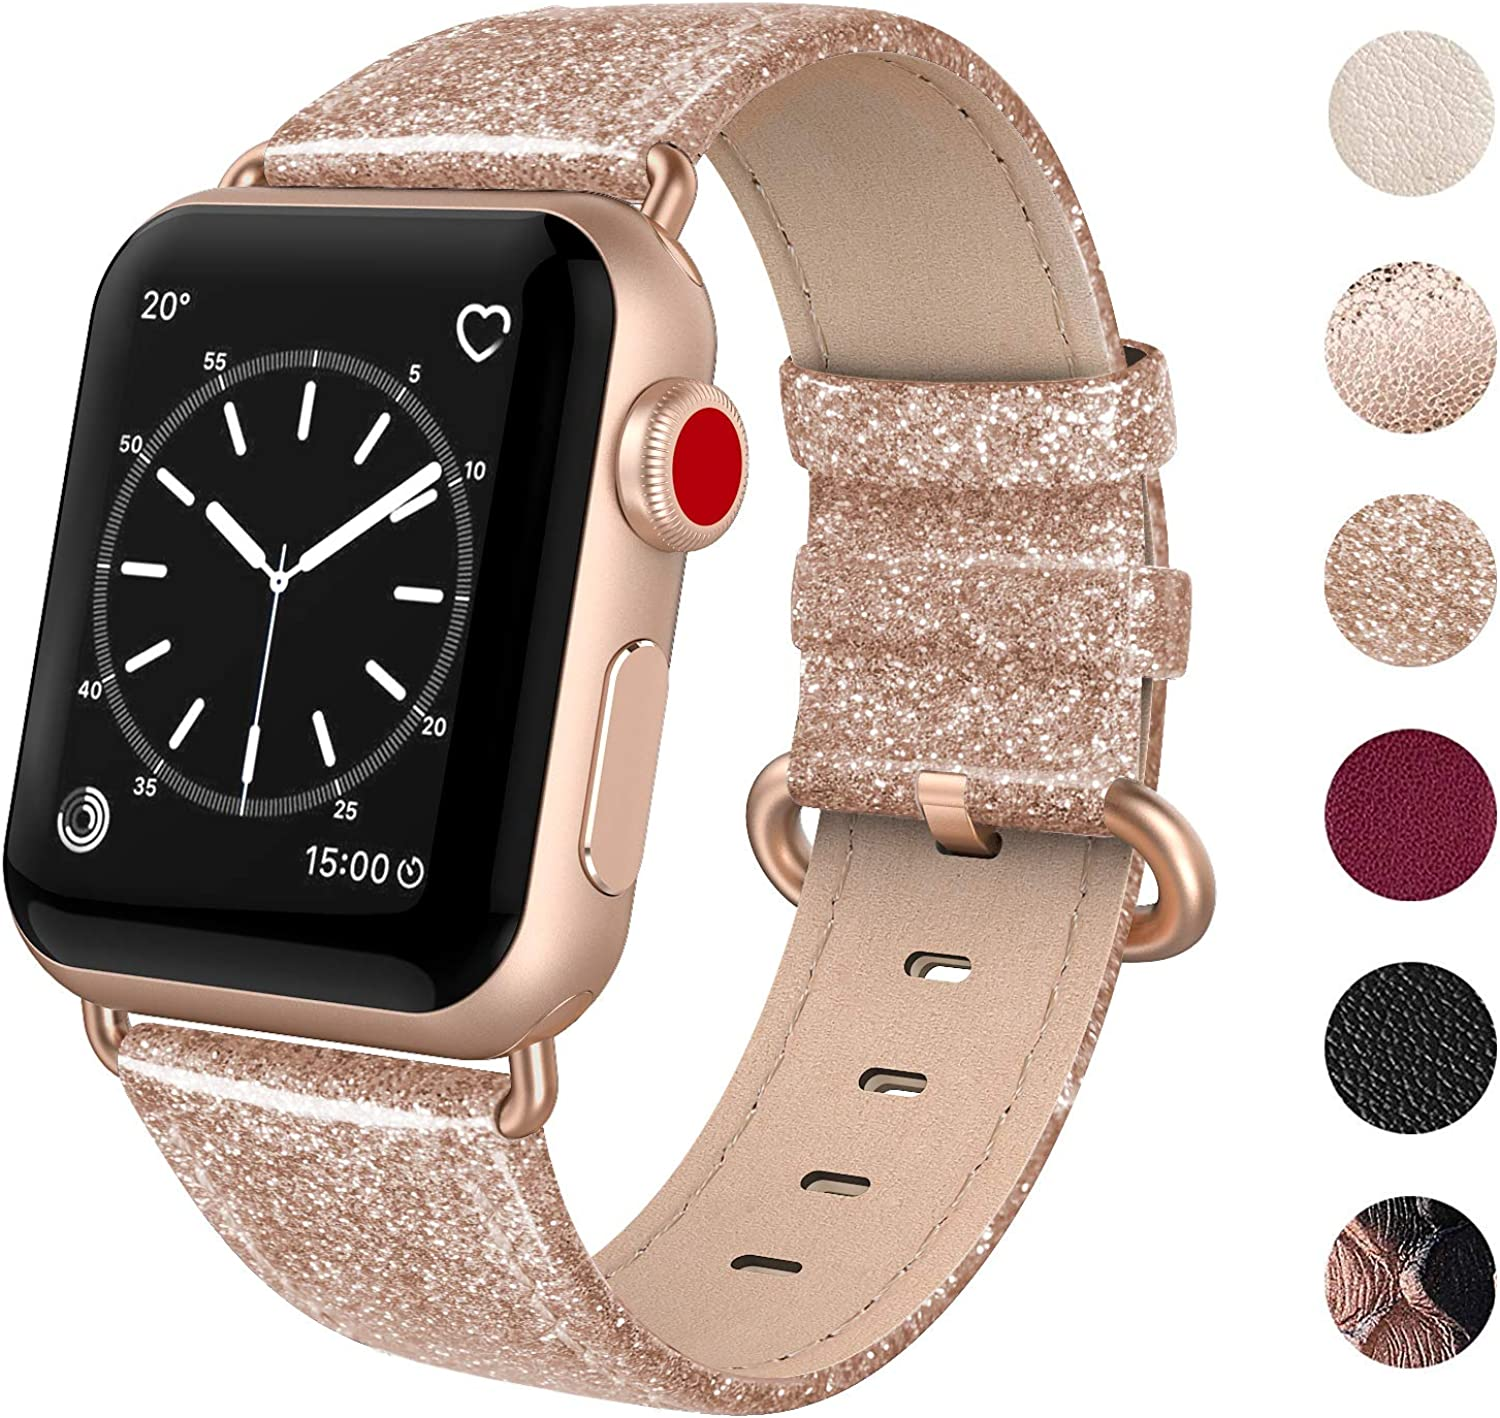 SWEES Leather Band Compatible for iWatch 38mm 40mm, Genuine Leather Replacement Strap Rose Gold Buckle Compatible iWatch Series 6 5 4 3 2 1, Sports & Edition Women Rose Gold, Brown, Black